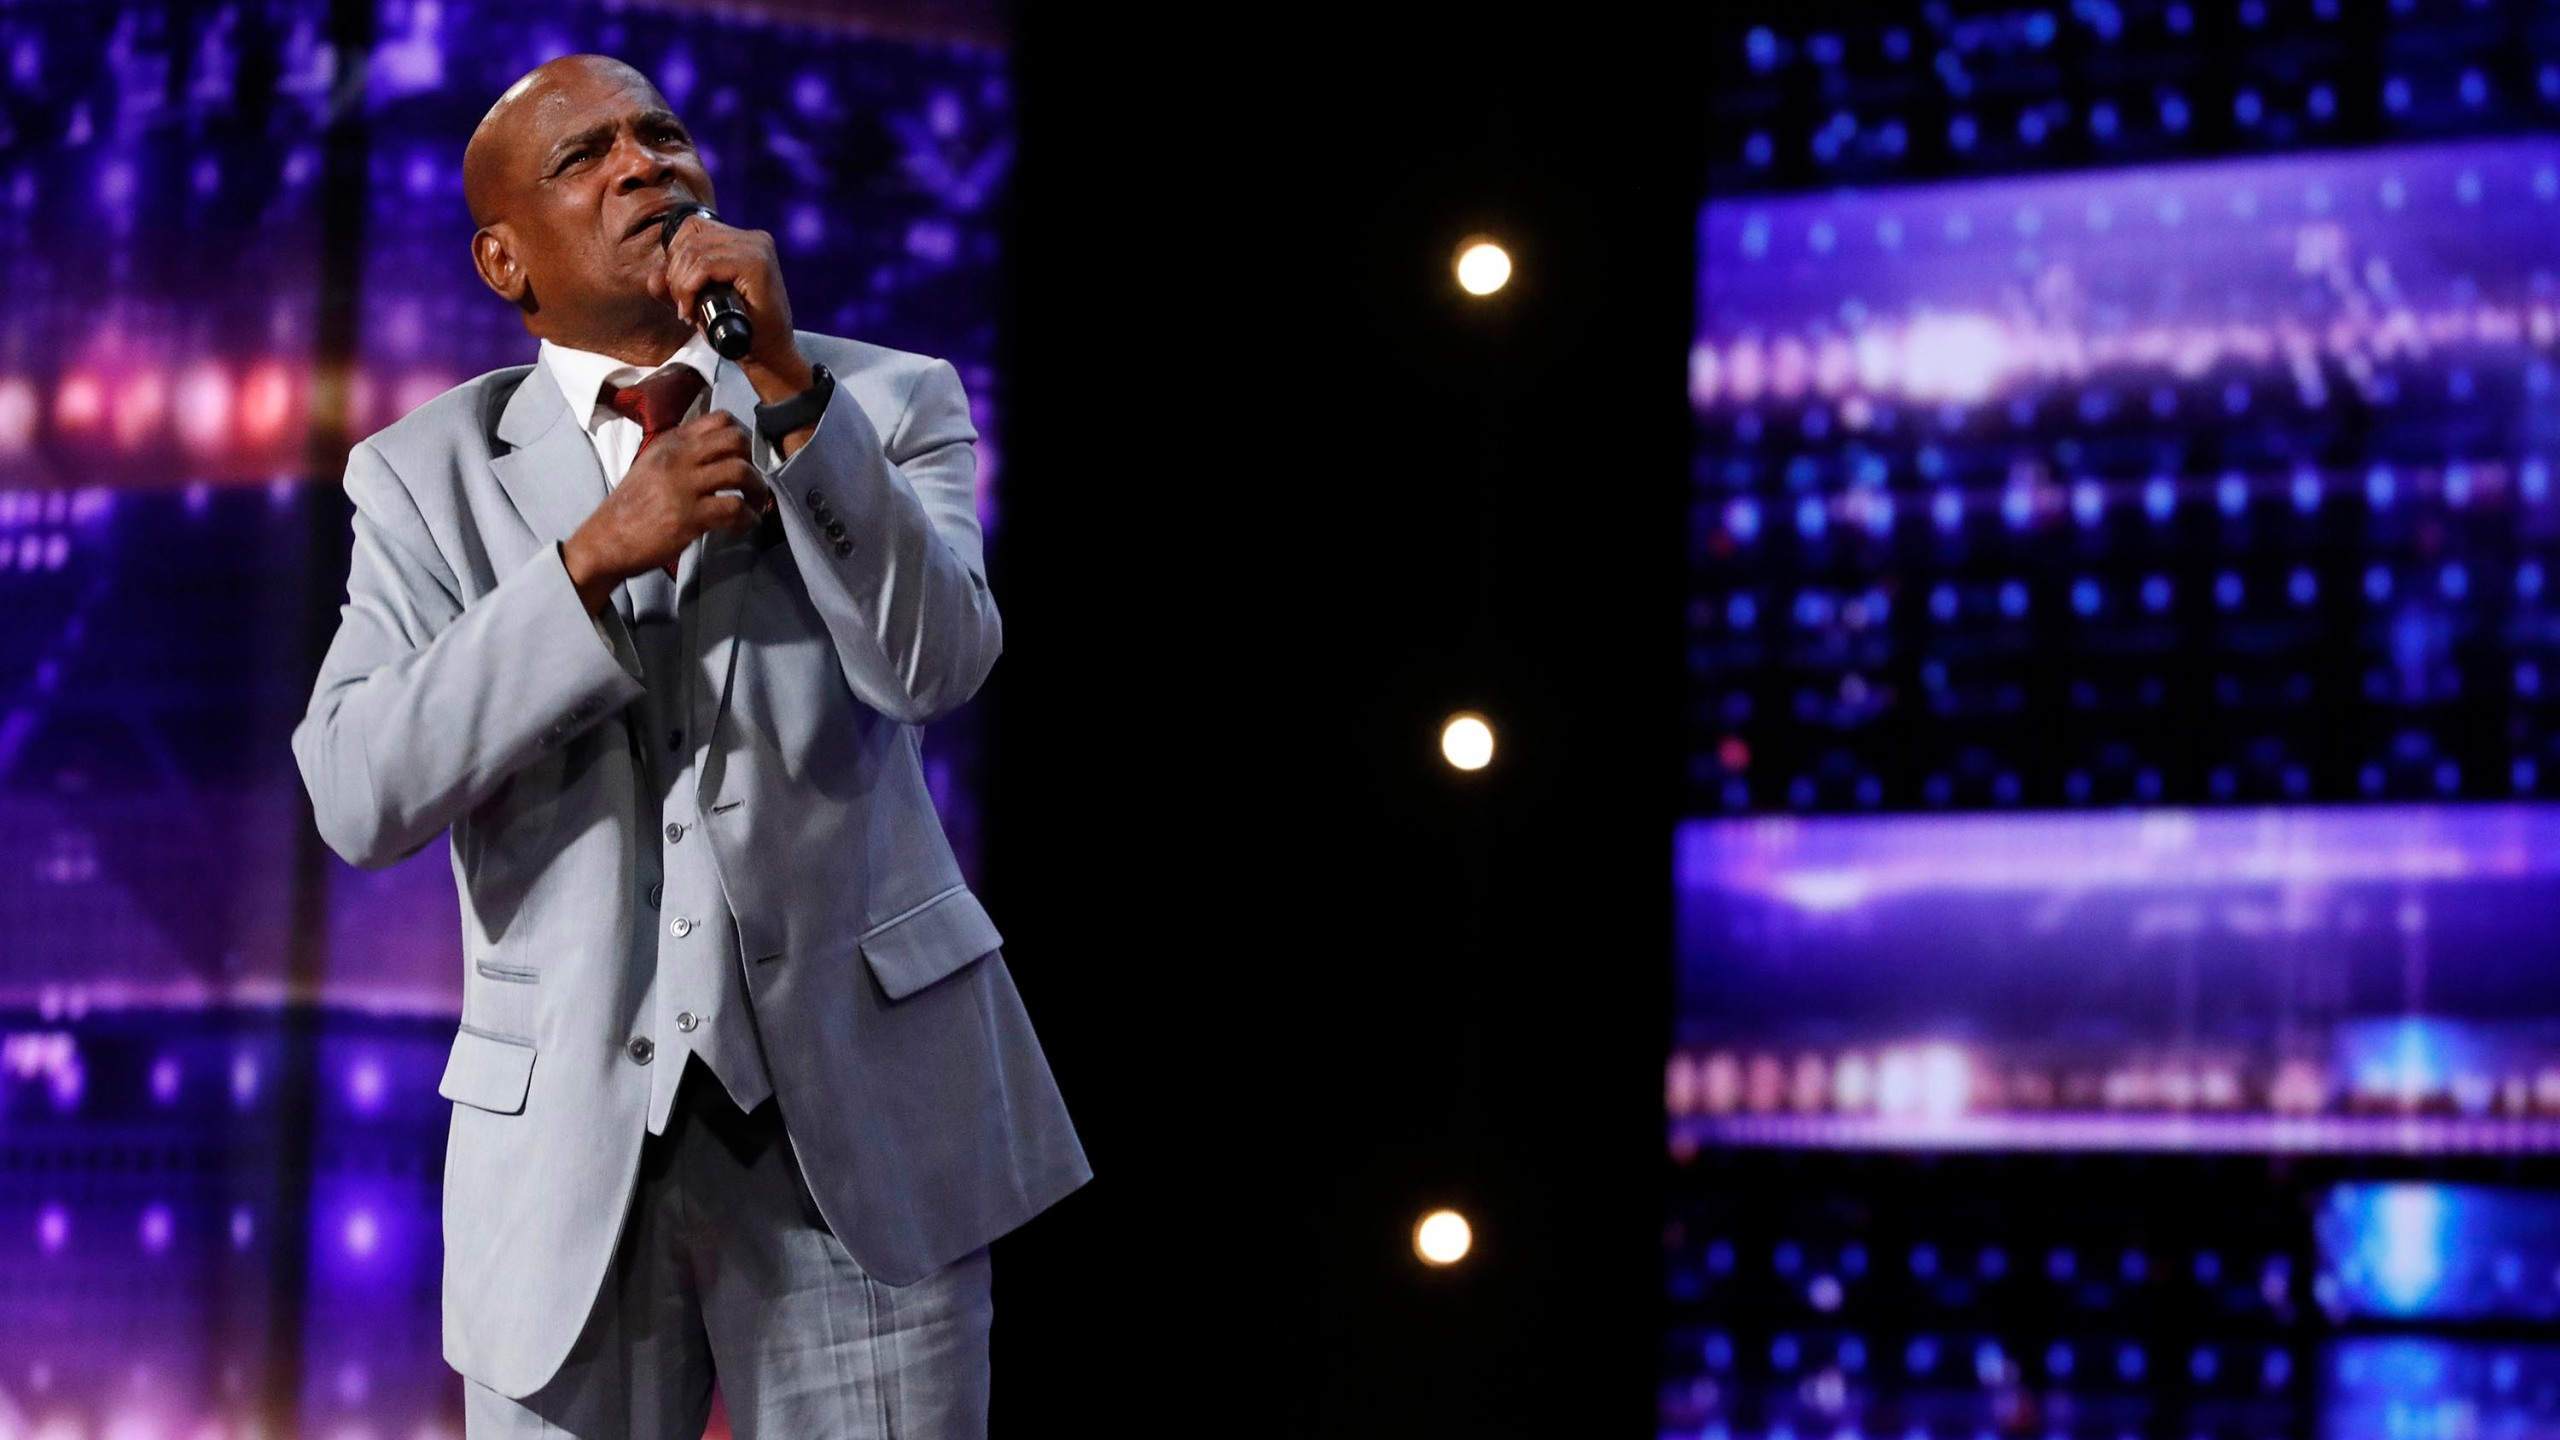 A wrongfully convicted man freed after 36 years is now an 'America's Got Talent' favorite